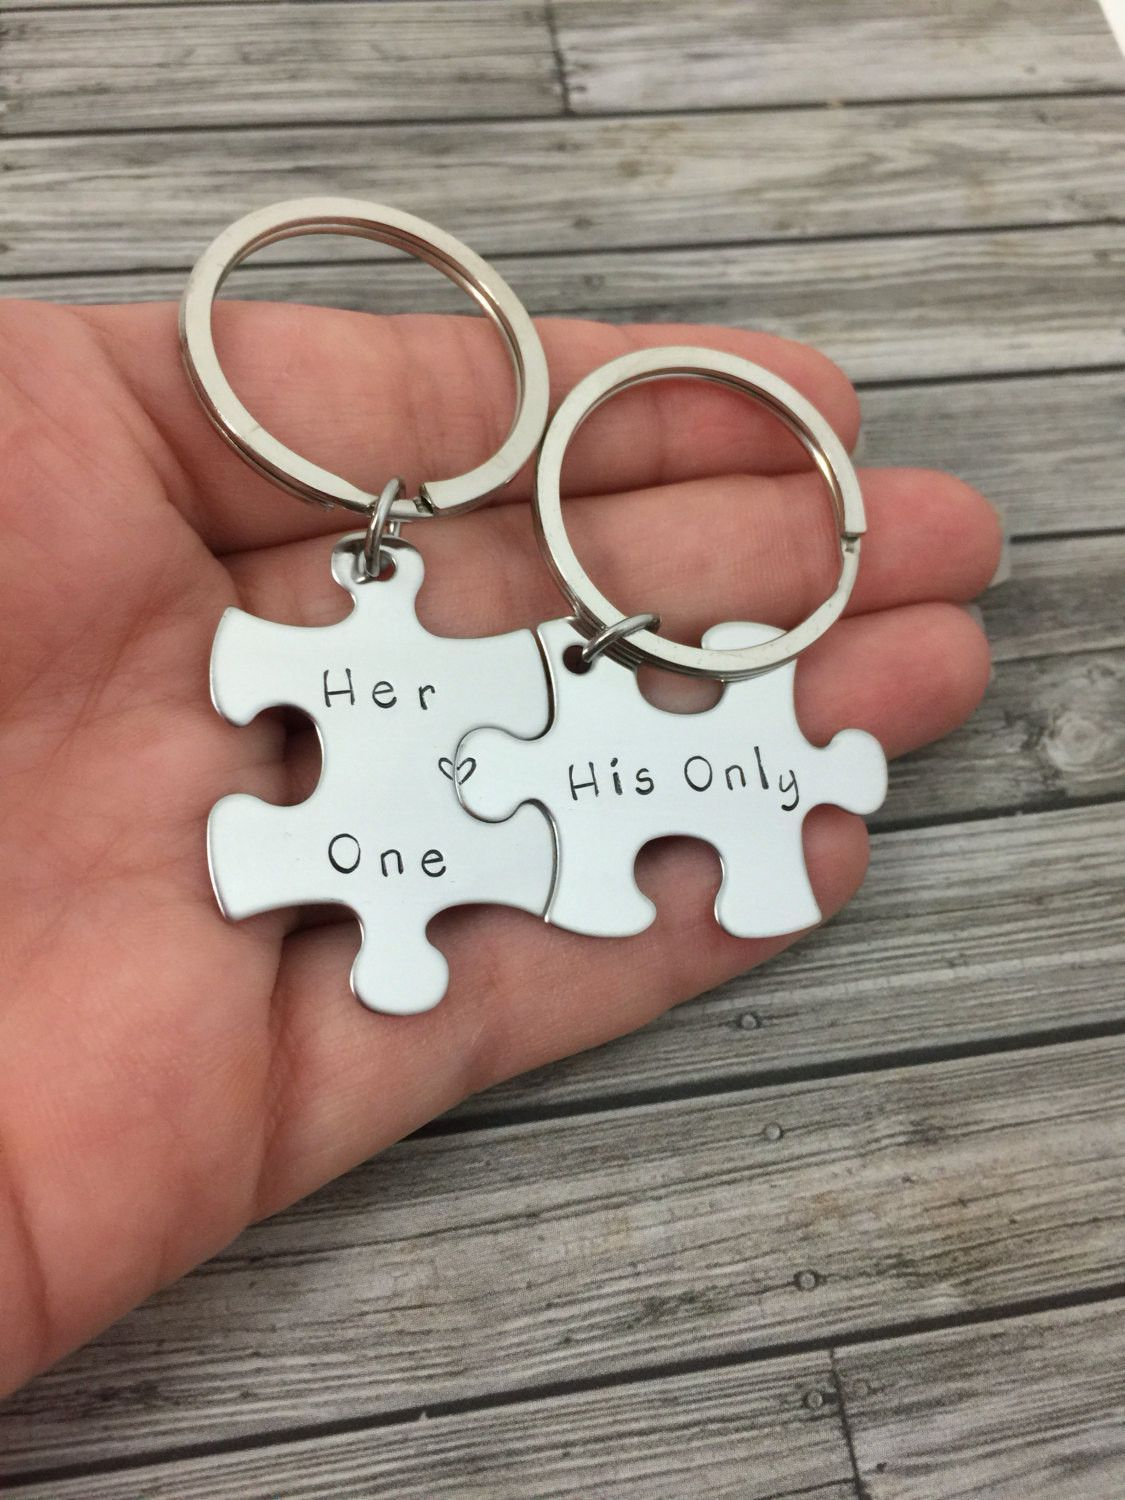 Boyfriend Gift, Couples Keychains, Her One His Only Puzzle